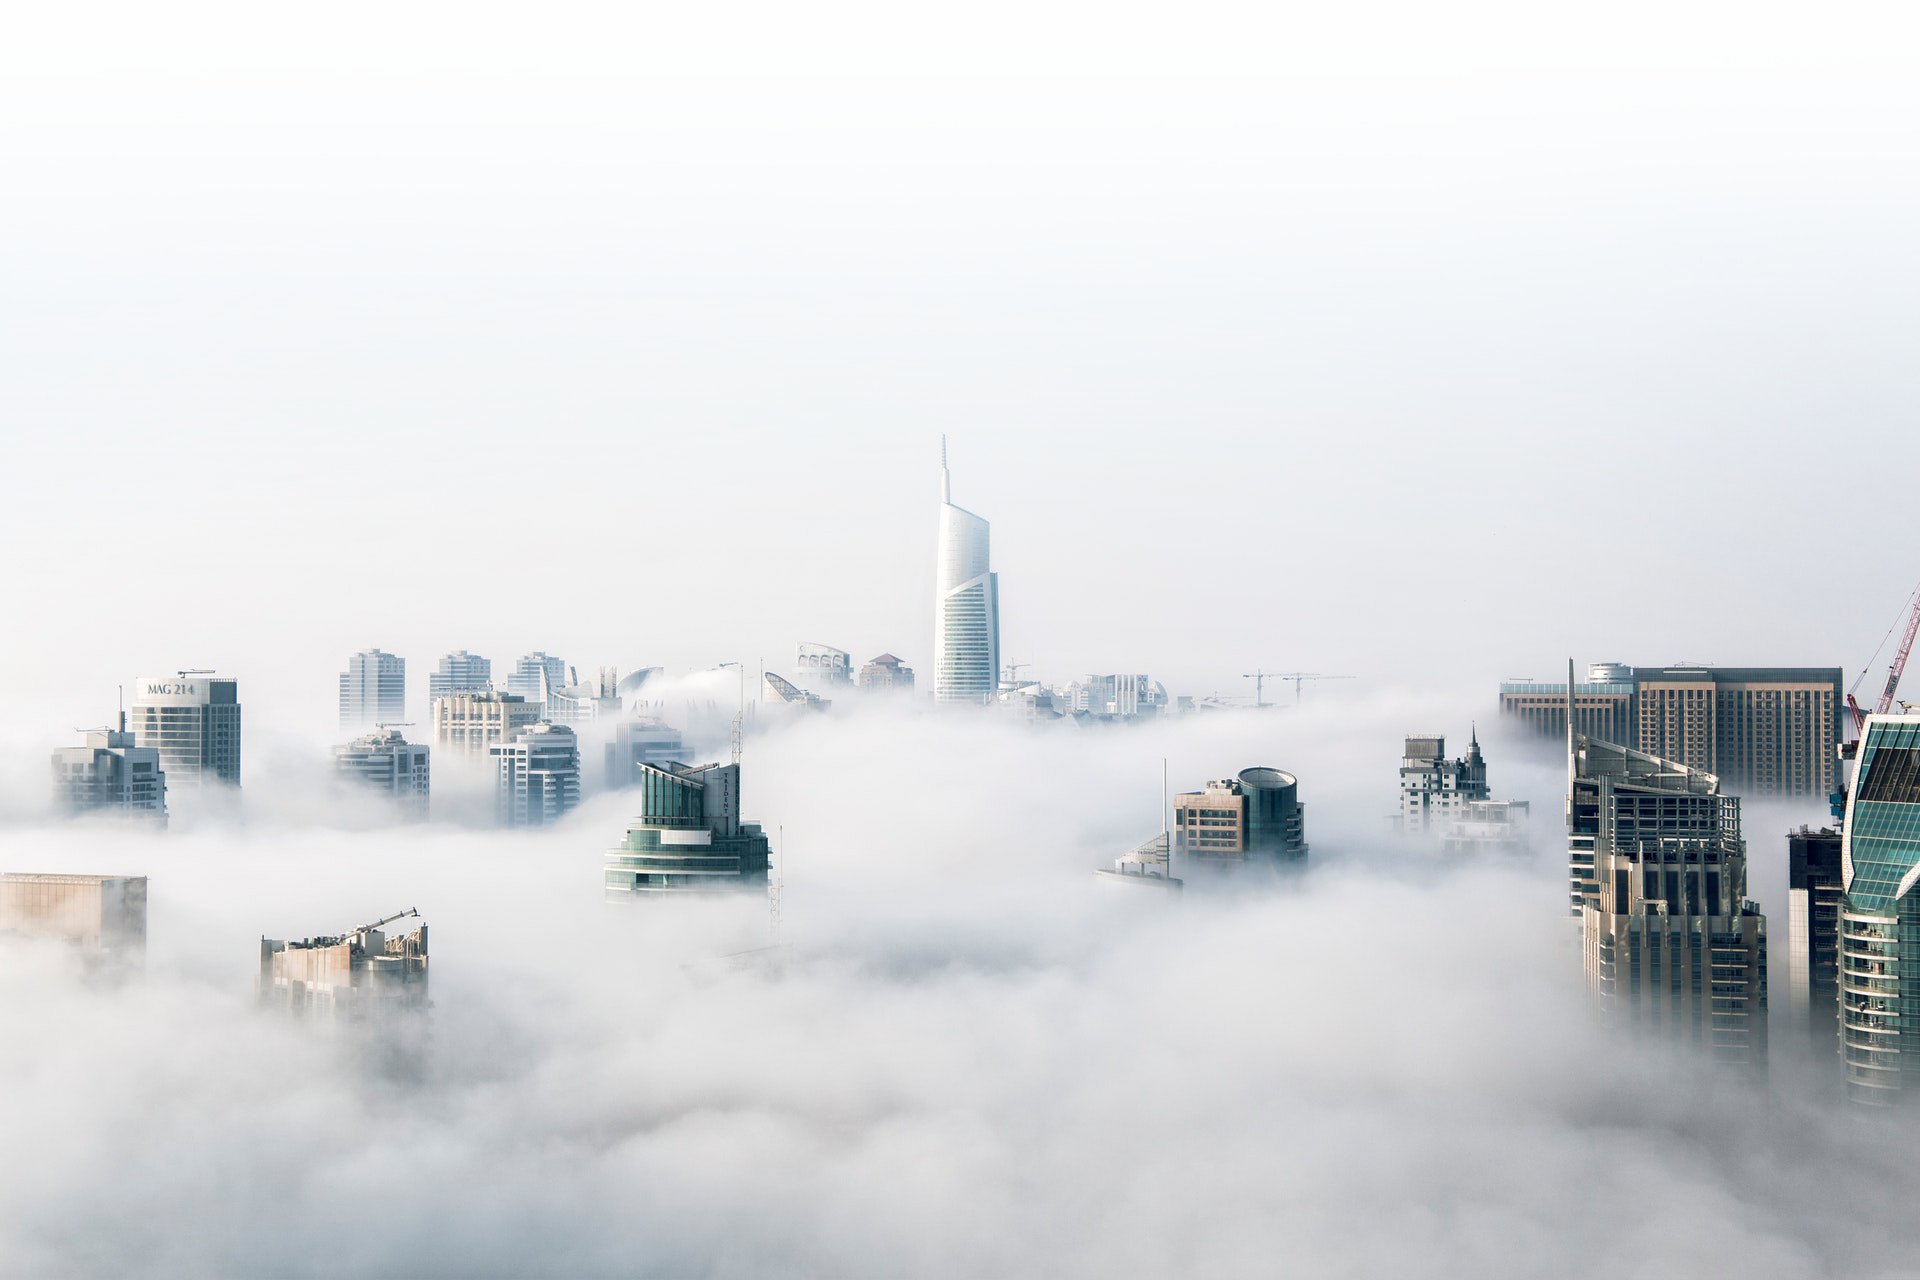 Skyscrapers and Clouds - LivingTech Webagentur